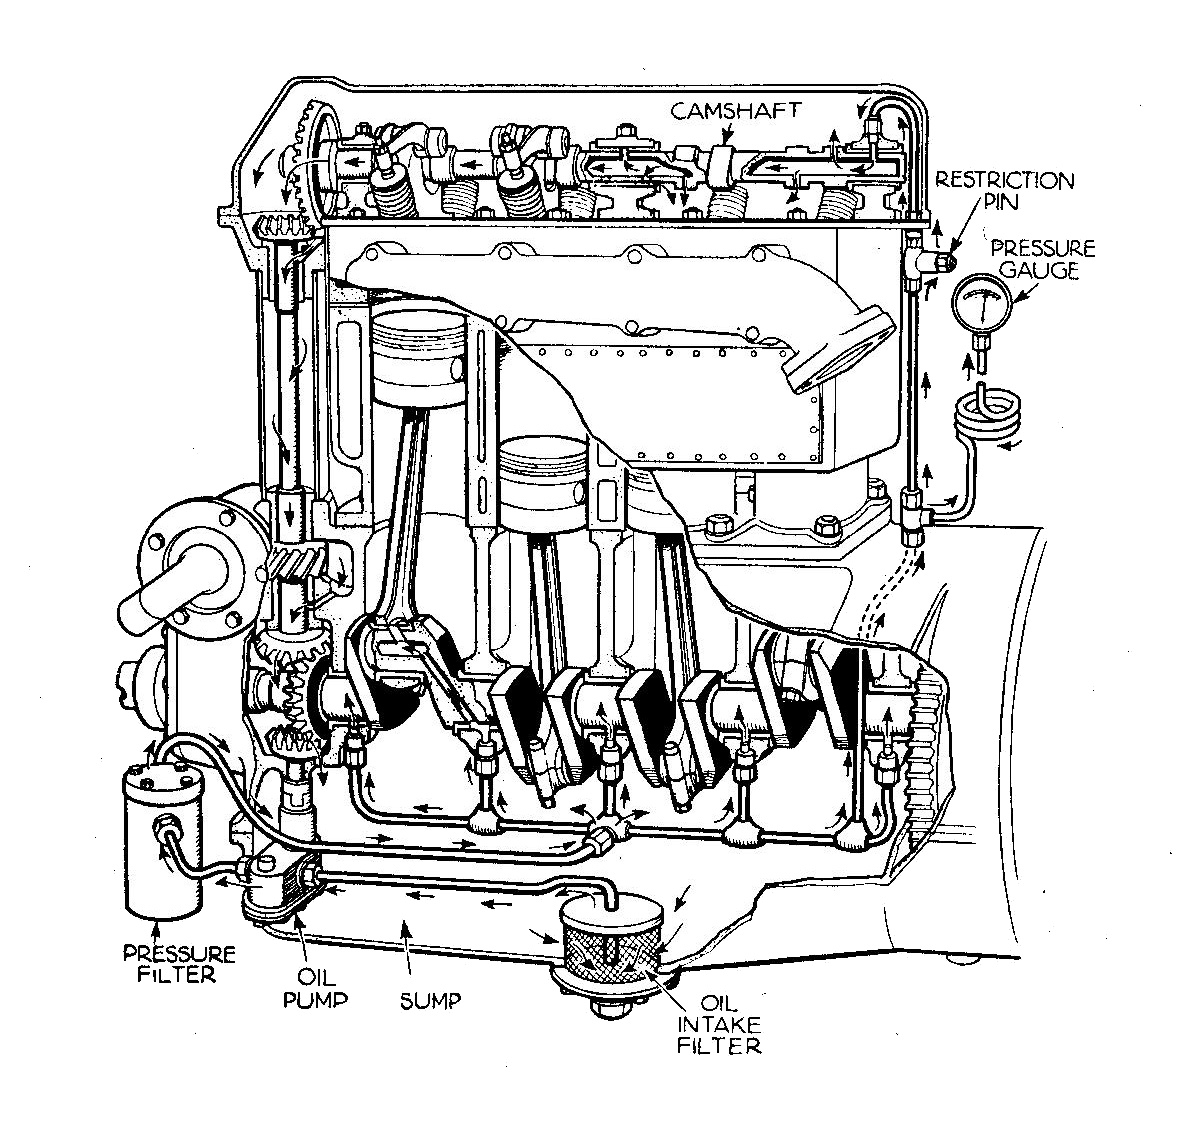 File:Overhead cam engine with forced oil lubrication